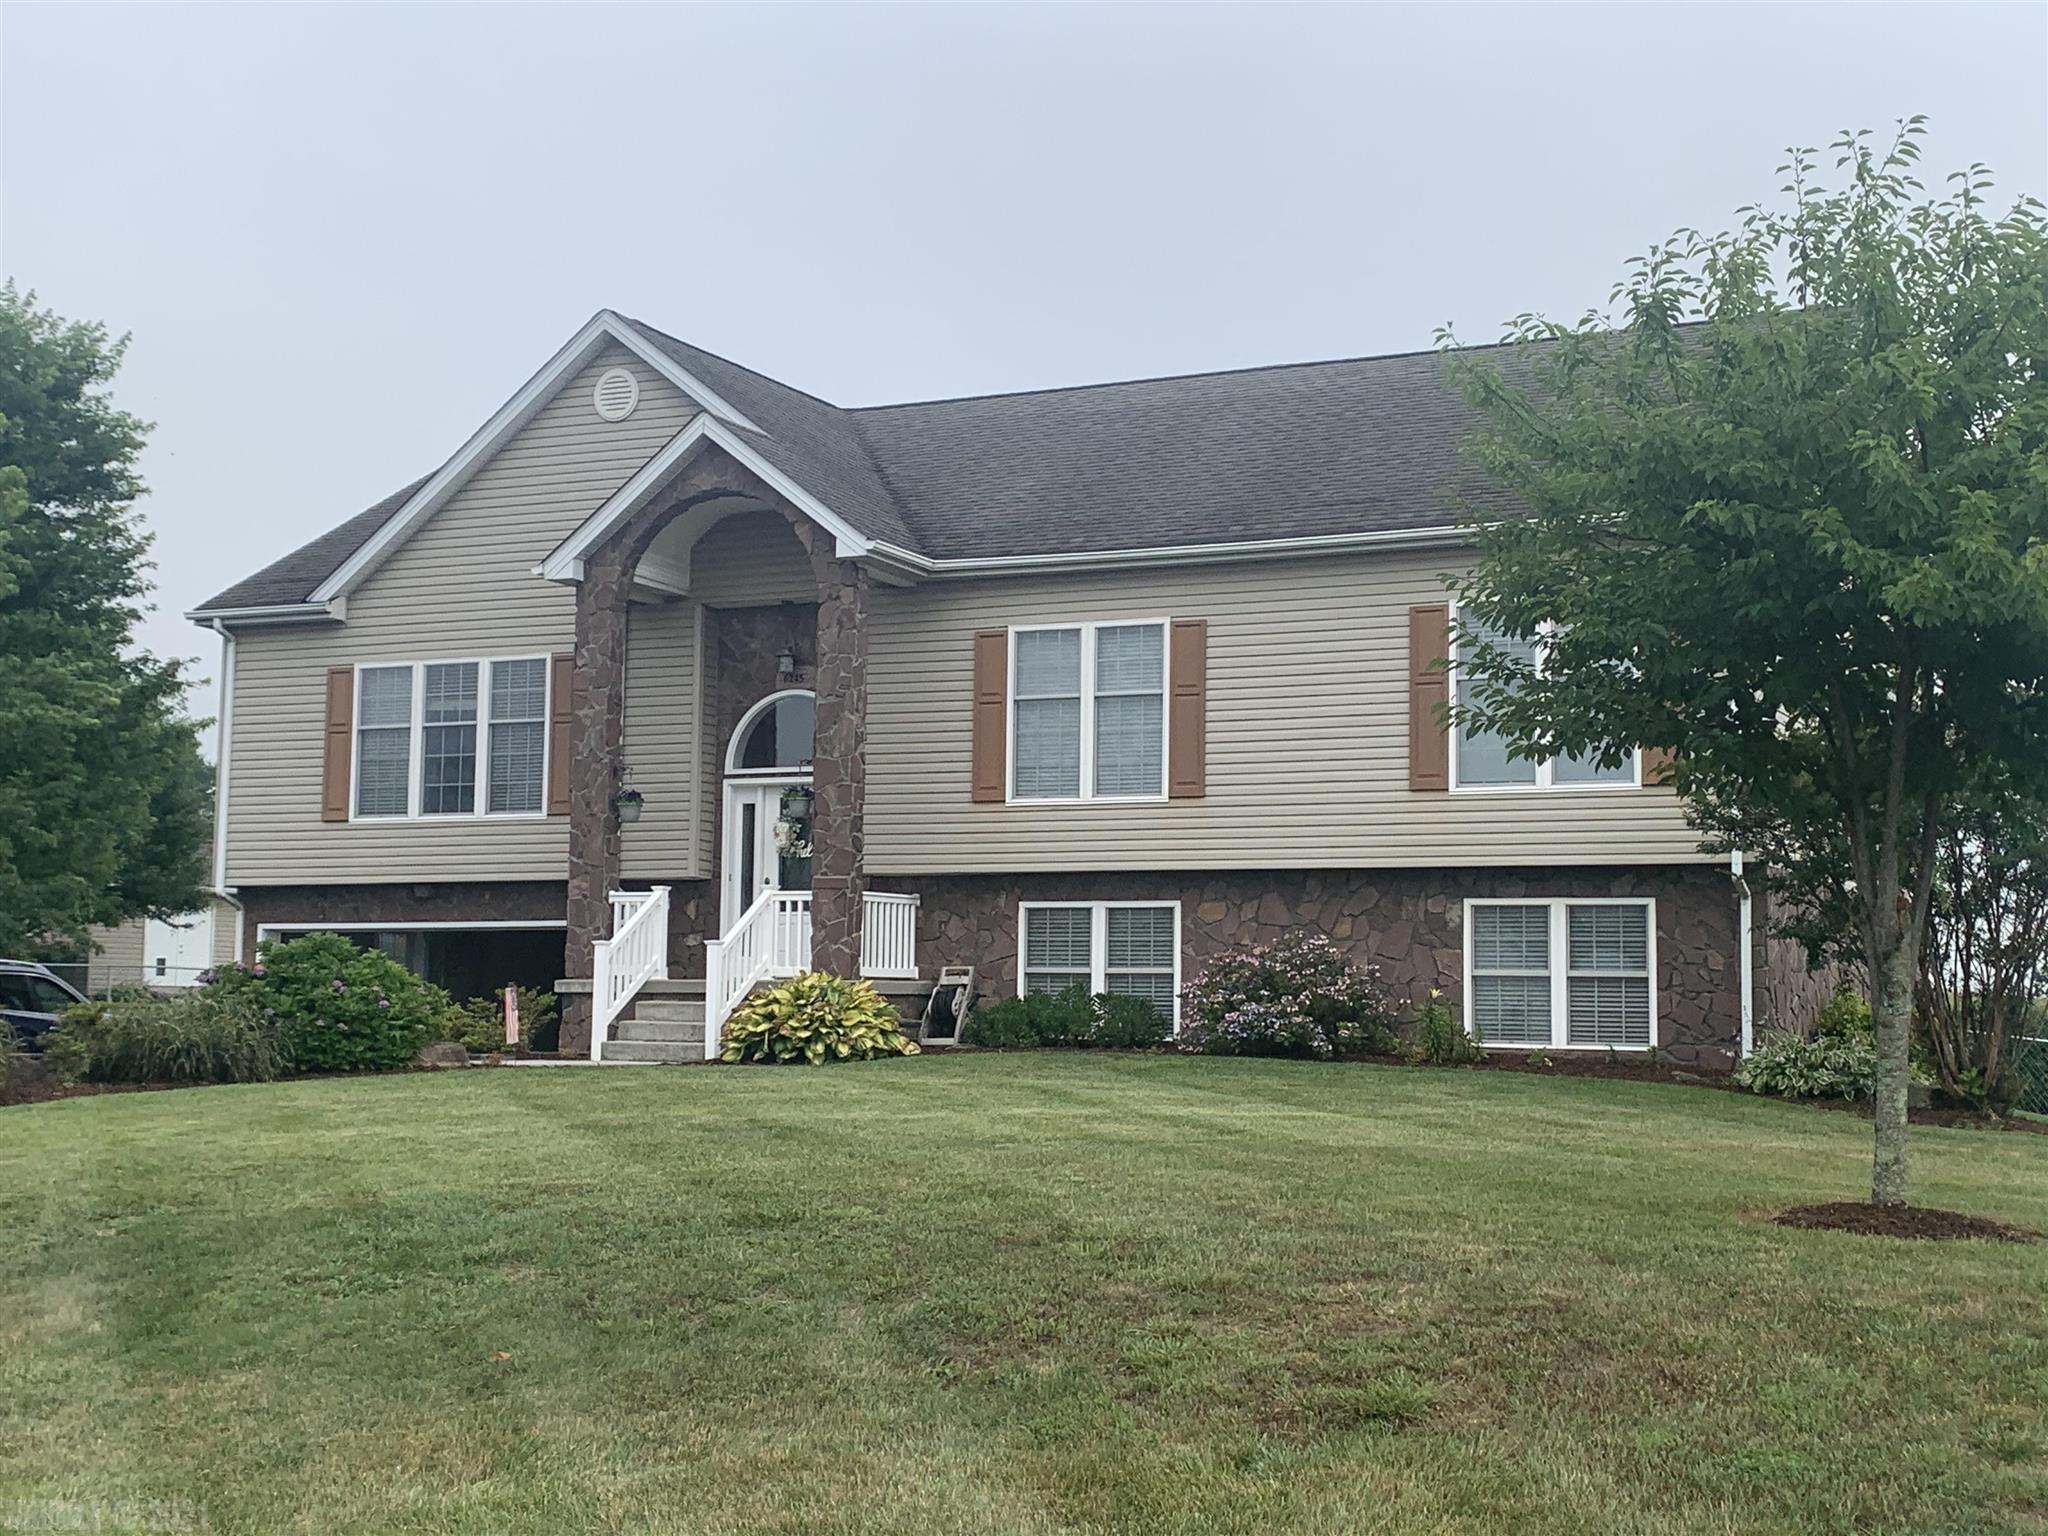 This is a beautiful home, with an amazing view off of the deck. There is also a Hot Tub to enjoy from the Patio. Lots of upgrades in the kitchen, including custom cabinets, with solid surface counter tops, under counter lighting. Also with a Gas Range. Avery nice Breakfast area adjoins the kitchen and dining room. A nice open Plan. There is a large Master Suite, with jetted whirlpool bath, shower and Walk-in closet. There are 3 Bedroom, with two full baths on main level and a third full bath adjoining the recreation room. Which can be used for a home theatre, exercise room, family room, a multi purpose room.  A very large area,  room is 30 x 30.Franch doors on the lower level lead out to a large patio with a Hot Tub. Water Heater, HP, and Refrigerator have been replaced in the last 5 years.